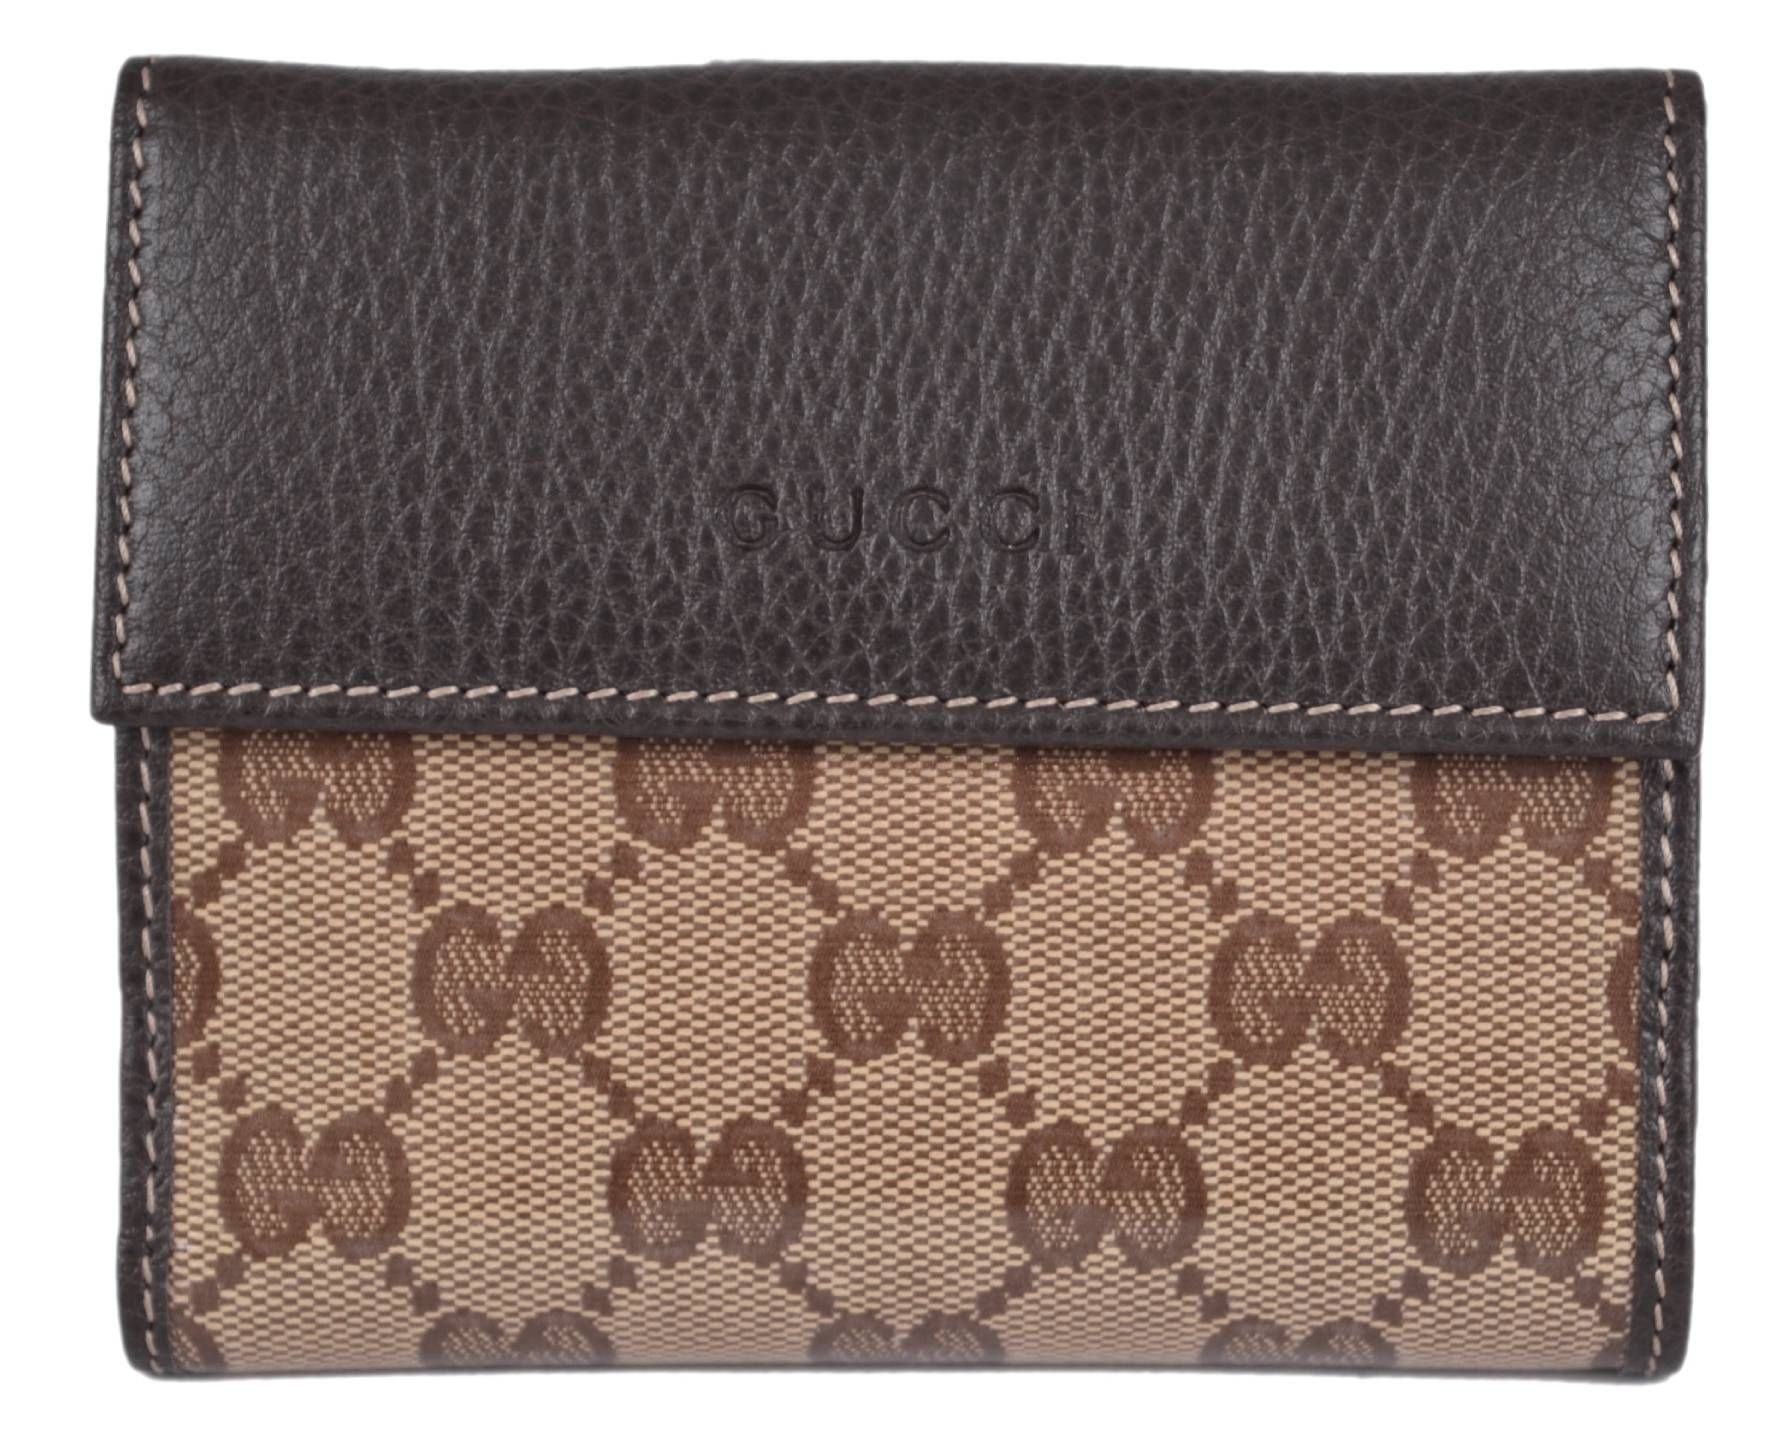 wholesale dealer 45795 2ed54 NEW Gucci Women's 143387 Crystal Canvas GG Guccissima French ...